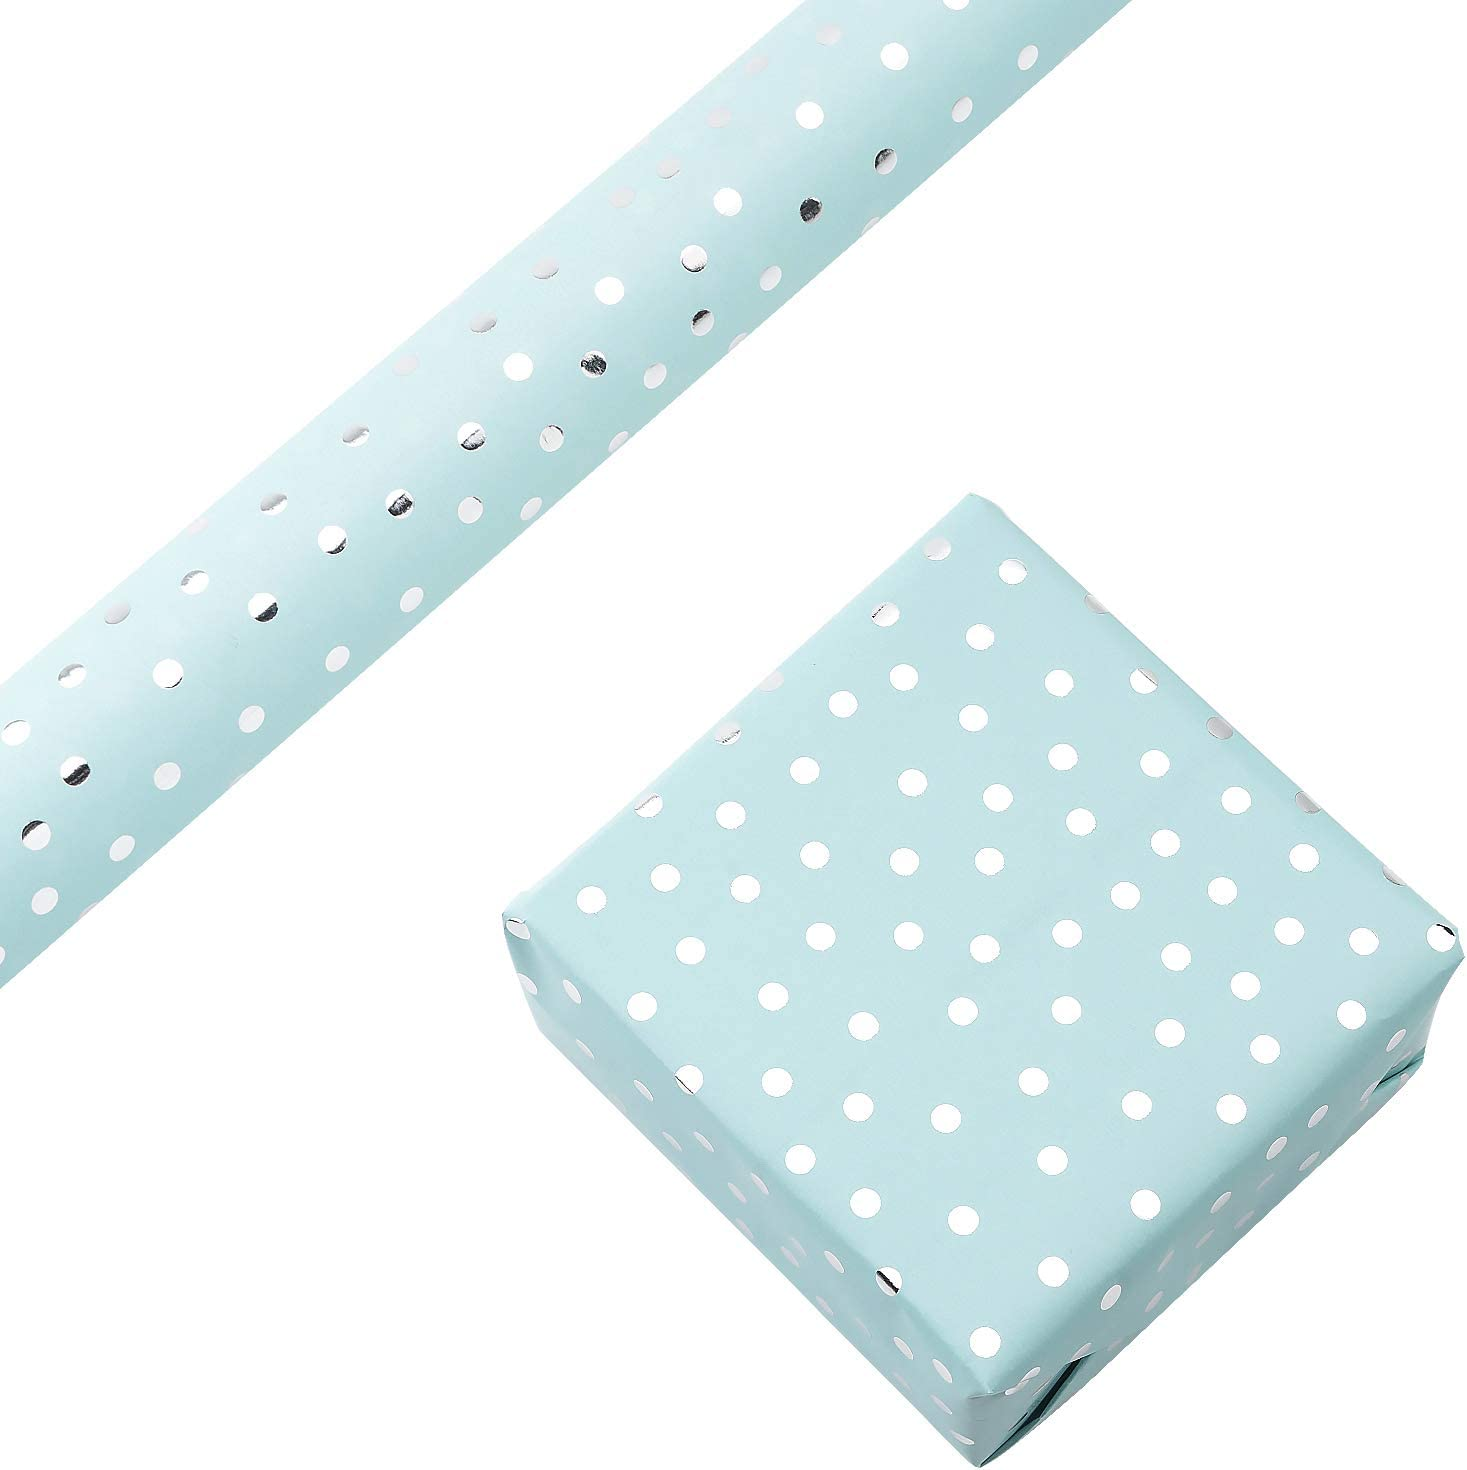 RUSPEPA Gift Wrapping Paper Roll-Silver Foil Small Irregular Dots Baby Blue Background Design for Wedding, Birthday, Baby-shower, Congrats, and Holiday Gifts - 30 Inch X 16 Feet